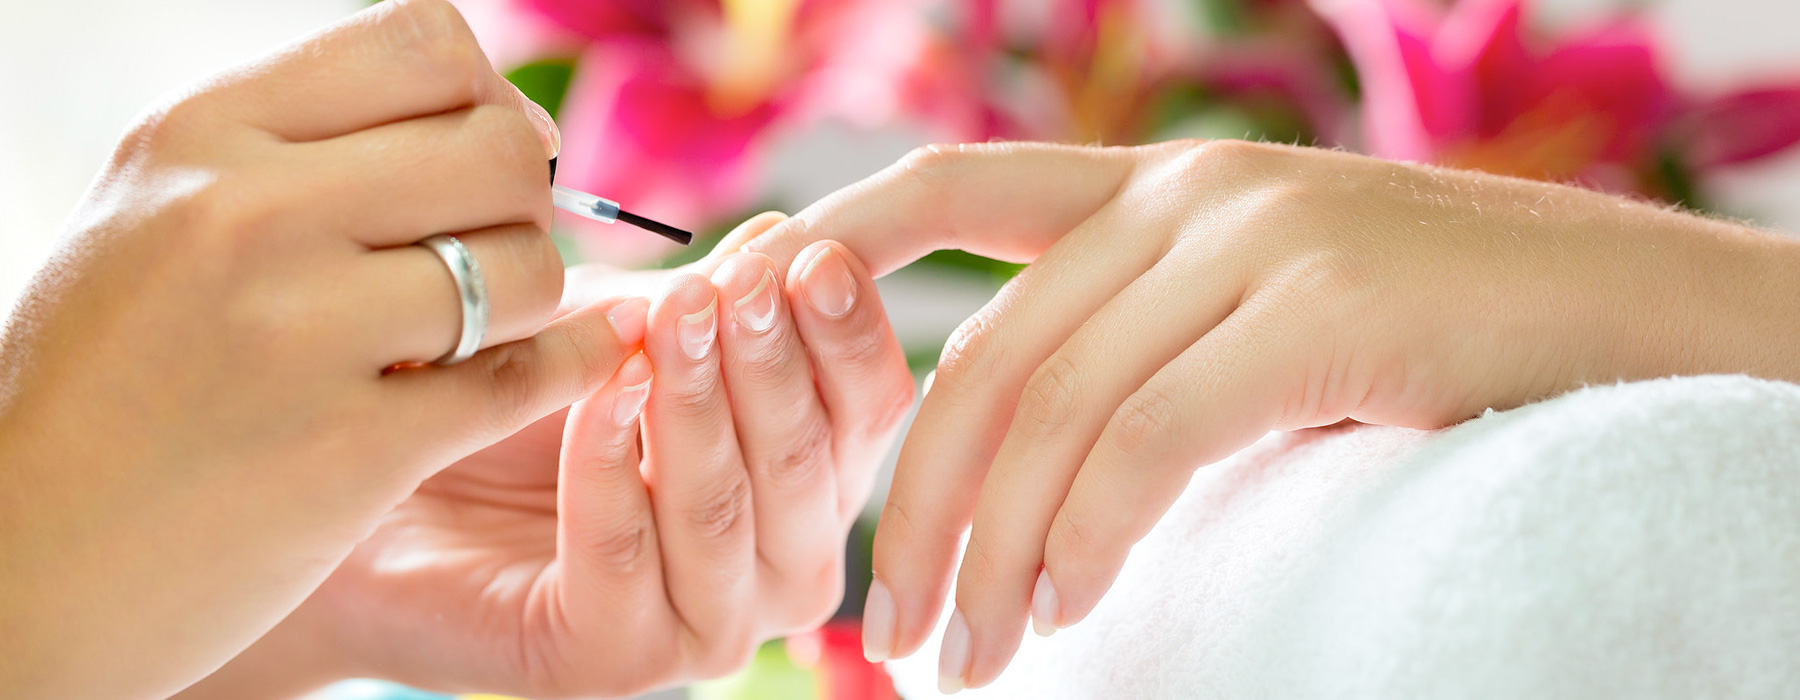 Nail Treatments, Manicures and Pedicures at Lir Beauty Rooms